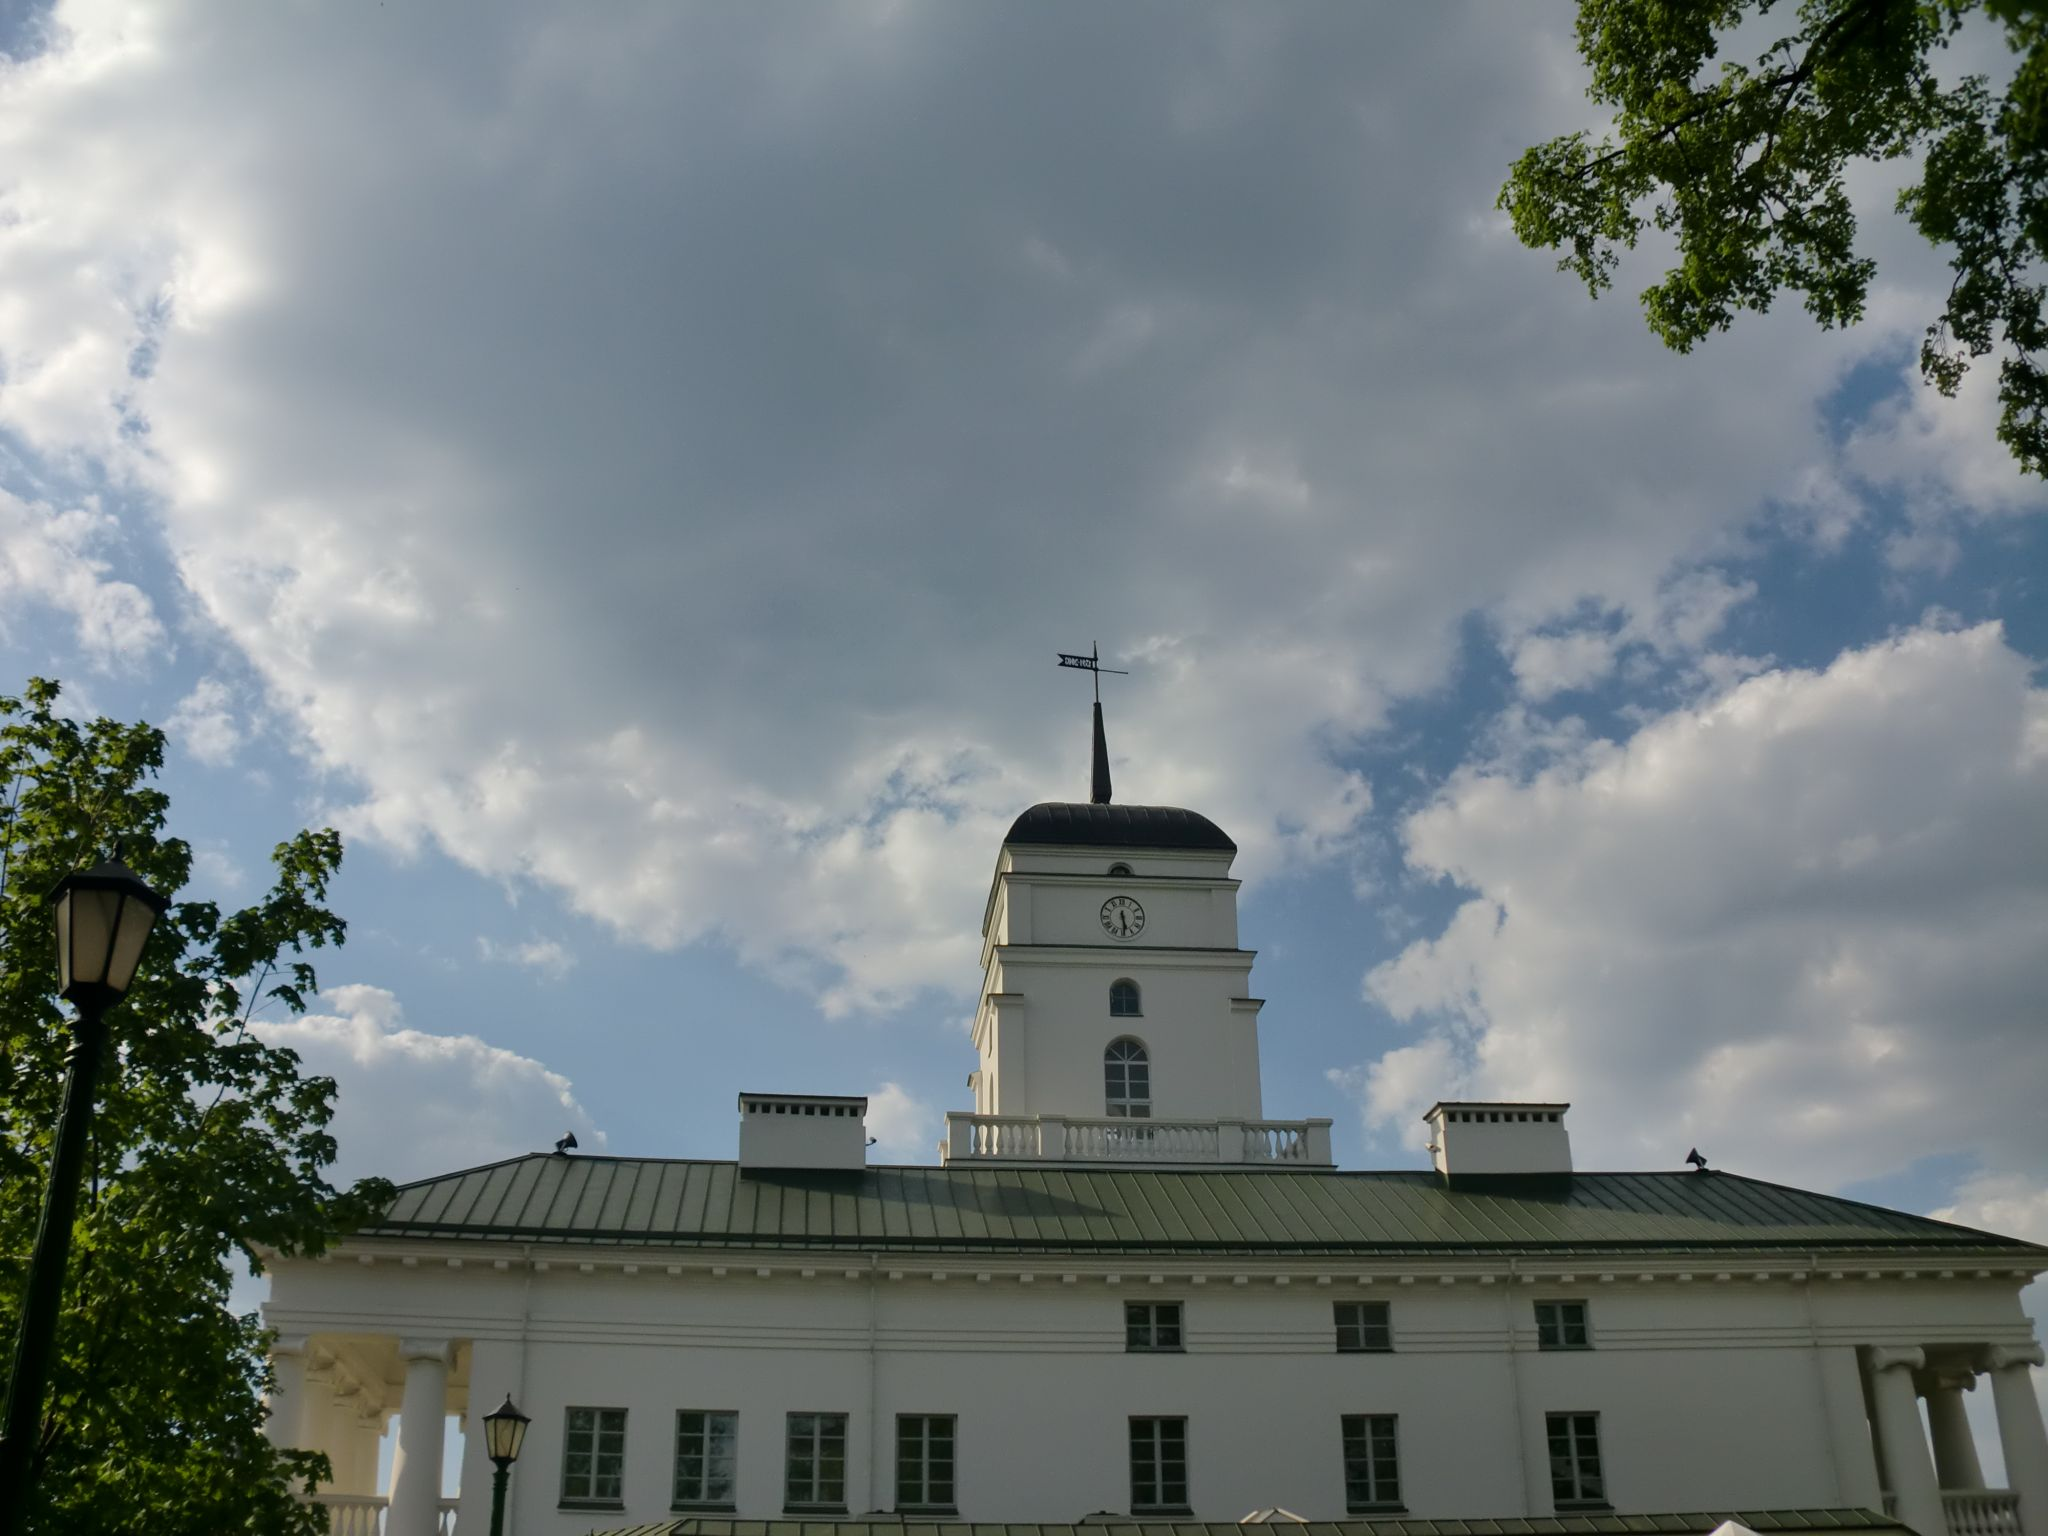 Minsk old town - Minsk, 1 amazing city you have to see